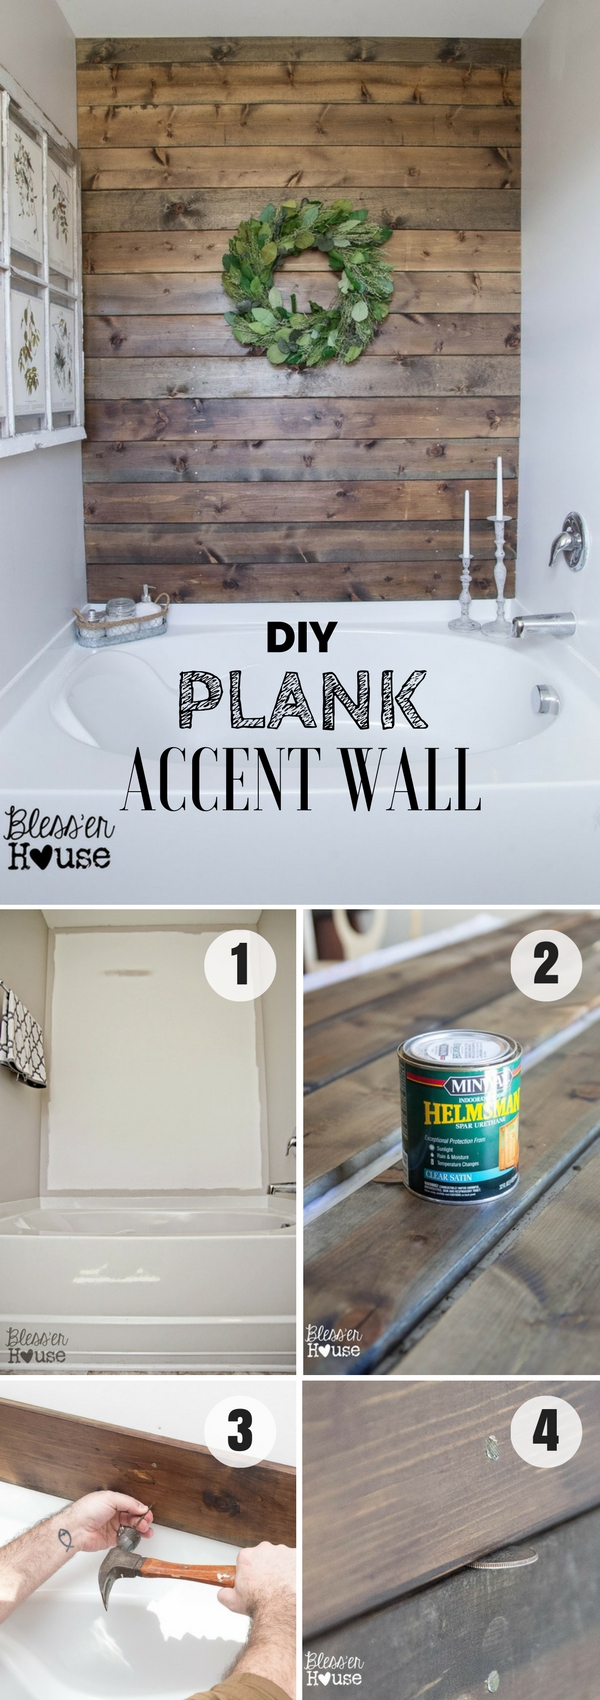 #DIY Plank Accent Wall for rustic bathroom decor #bathroomdecor